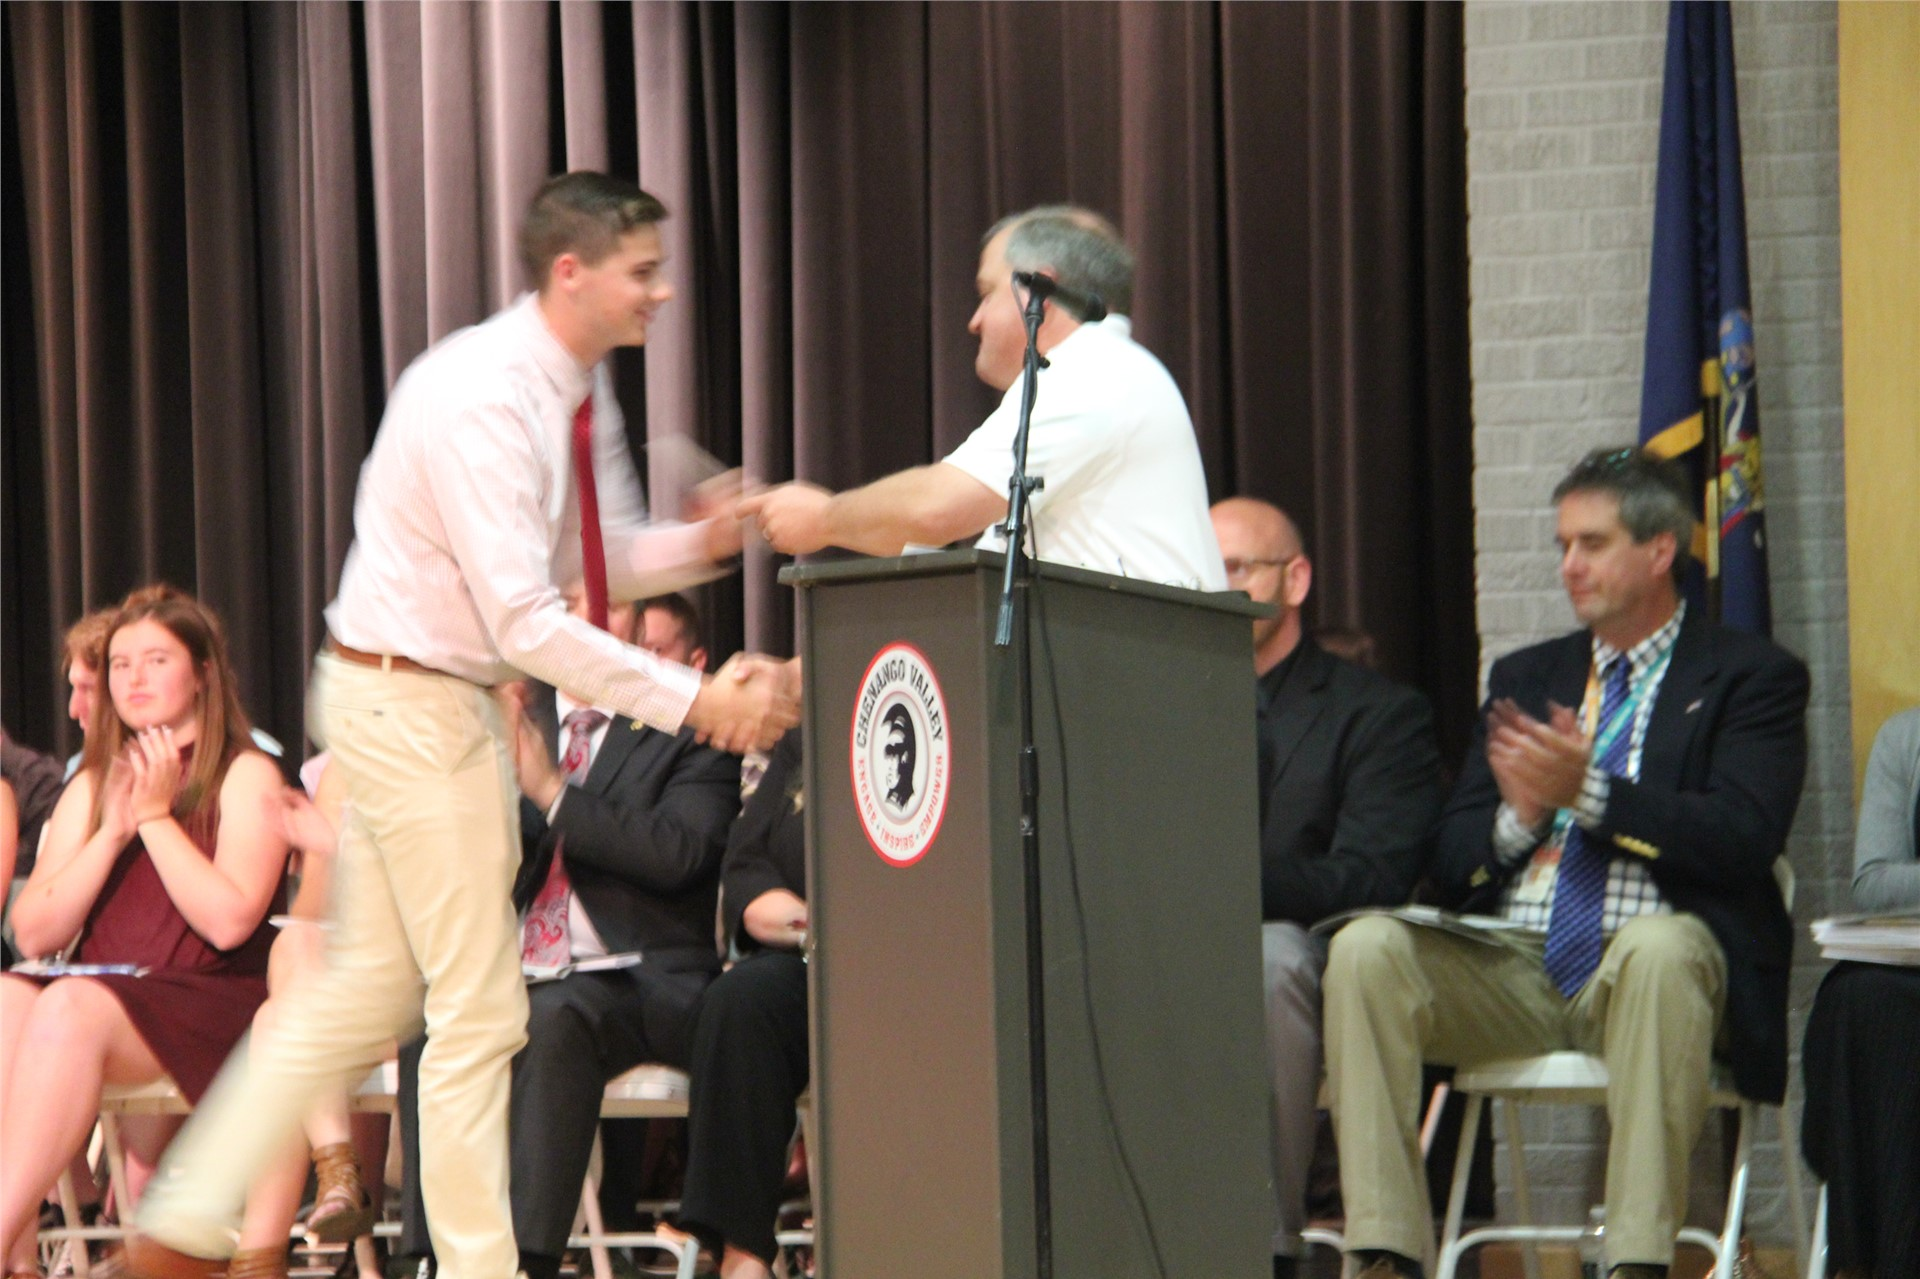 male student accepts award from man